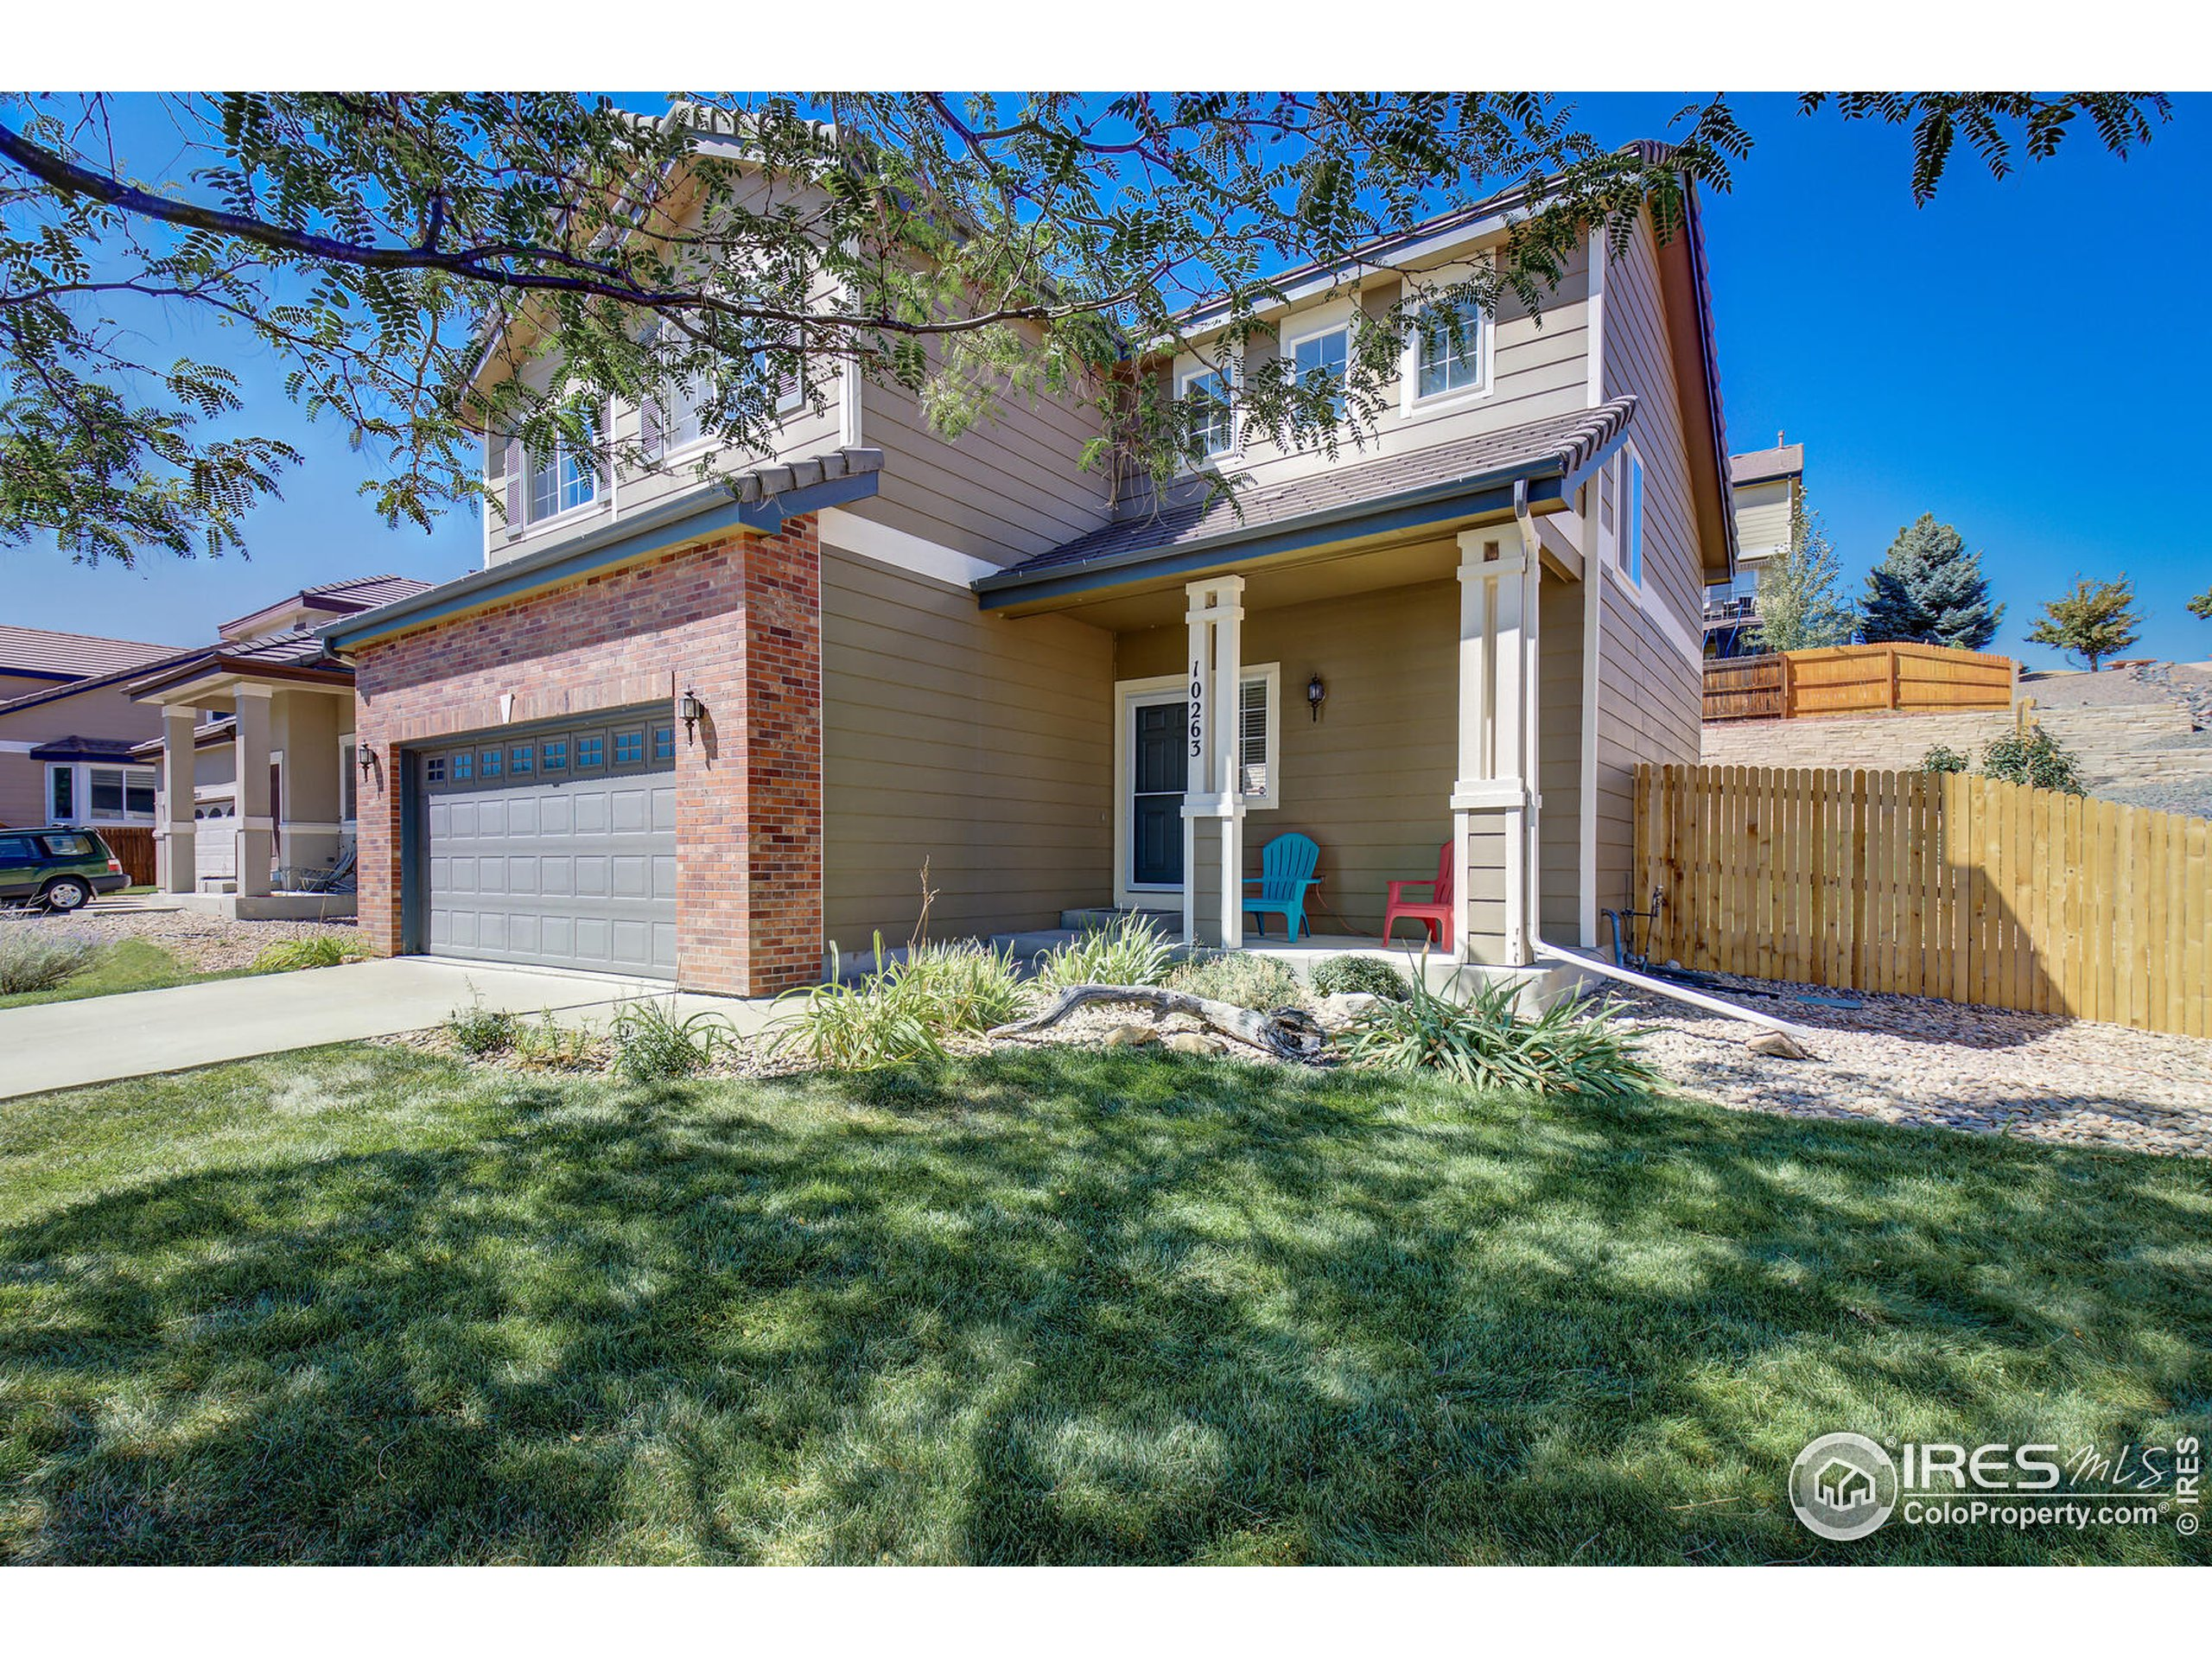 2 story home in Meridian subdivision